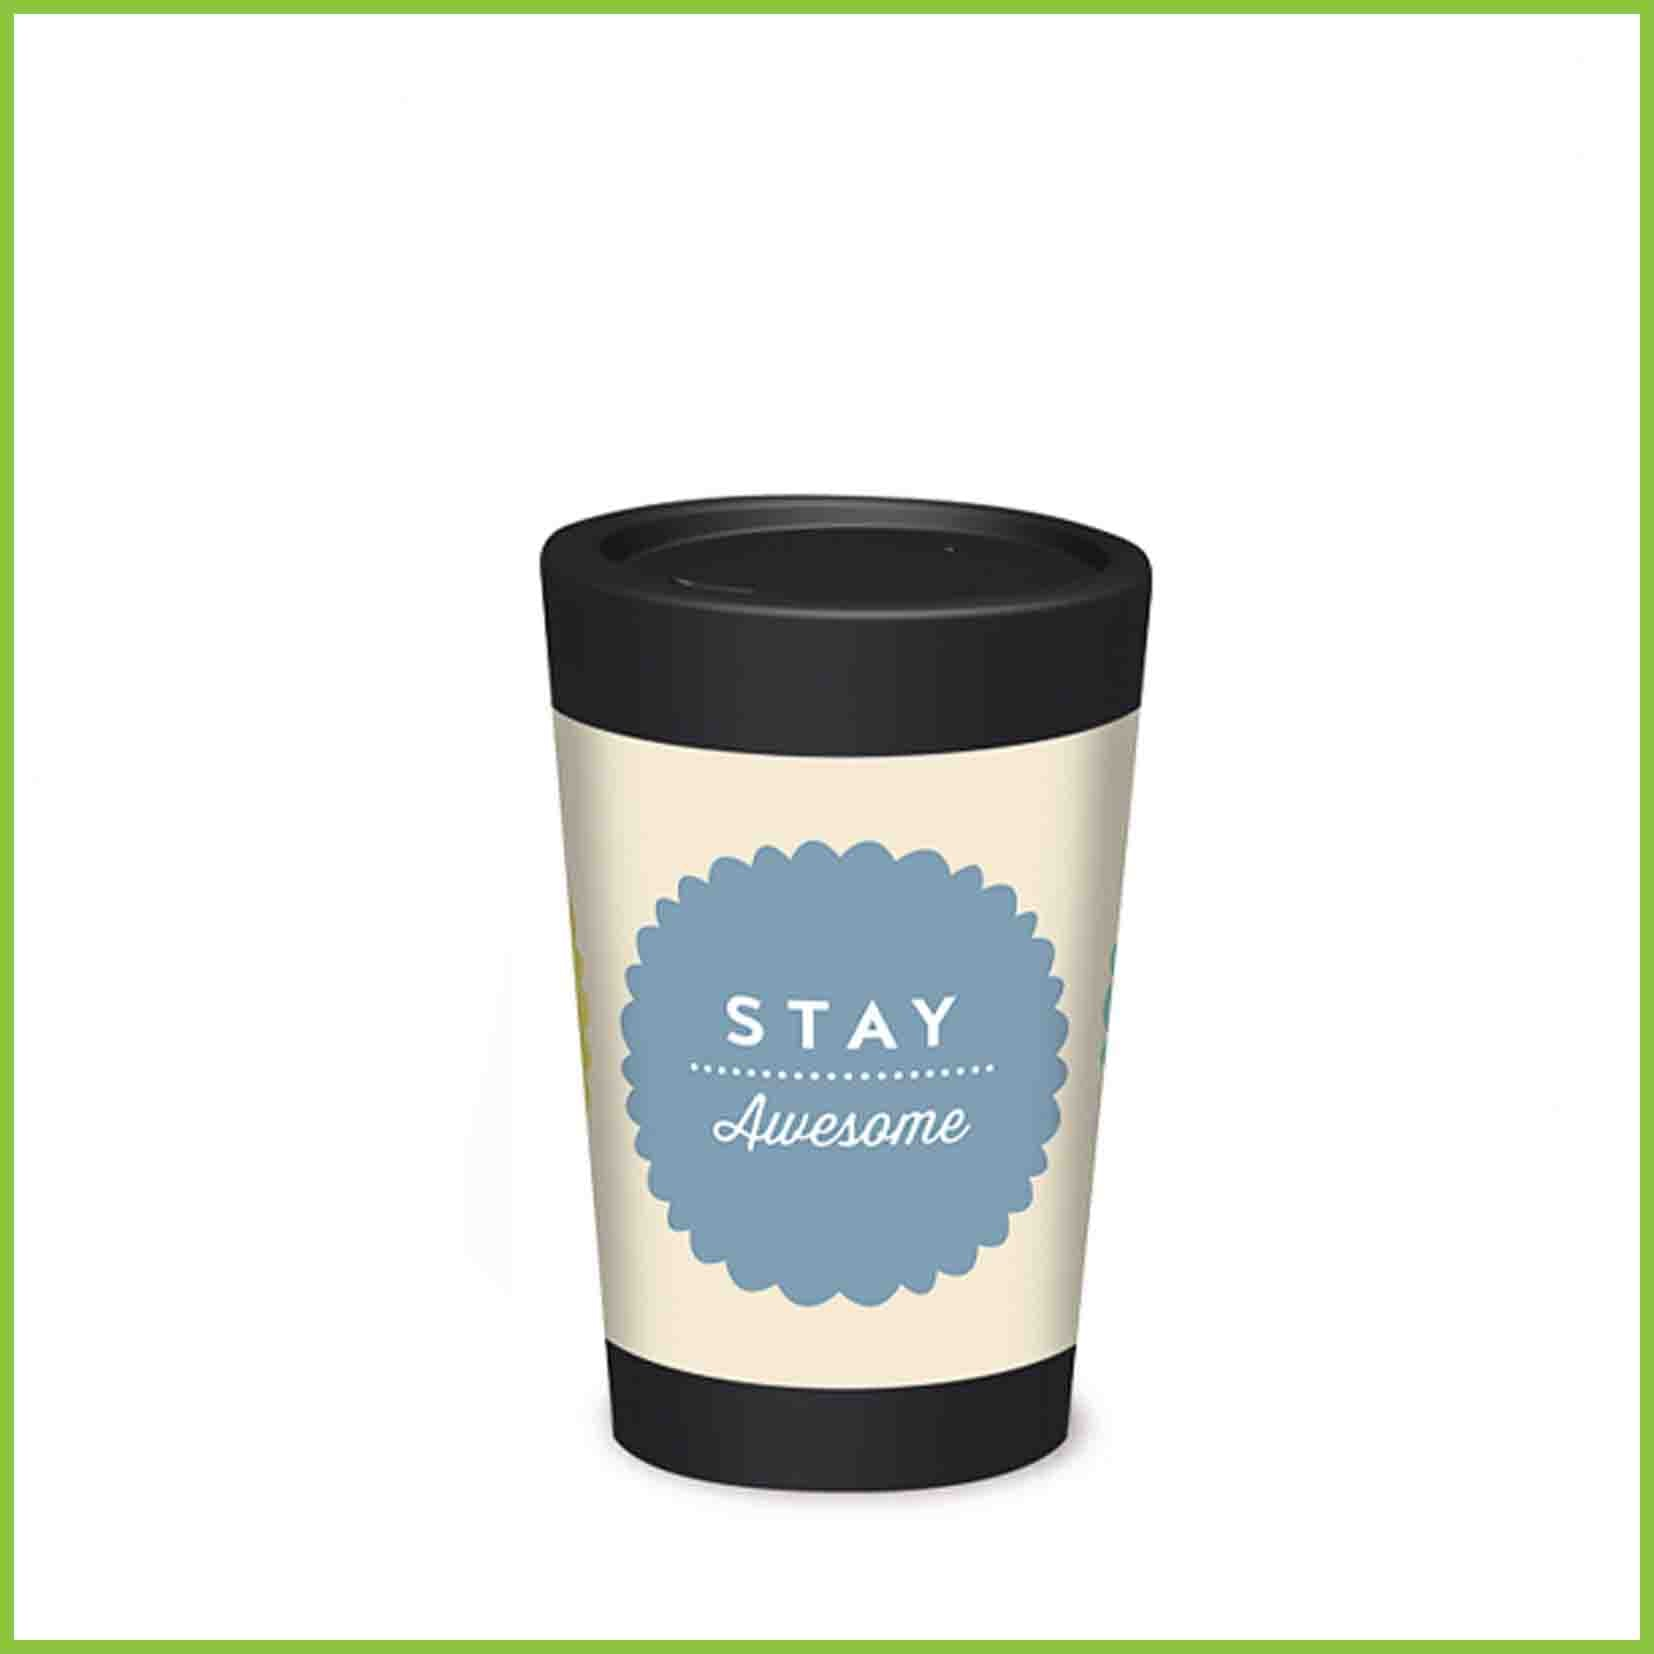 A lightweight reusable cup from CuppaCoffeeCup with a Stay Awesome design.